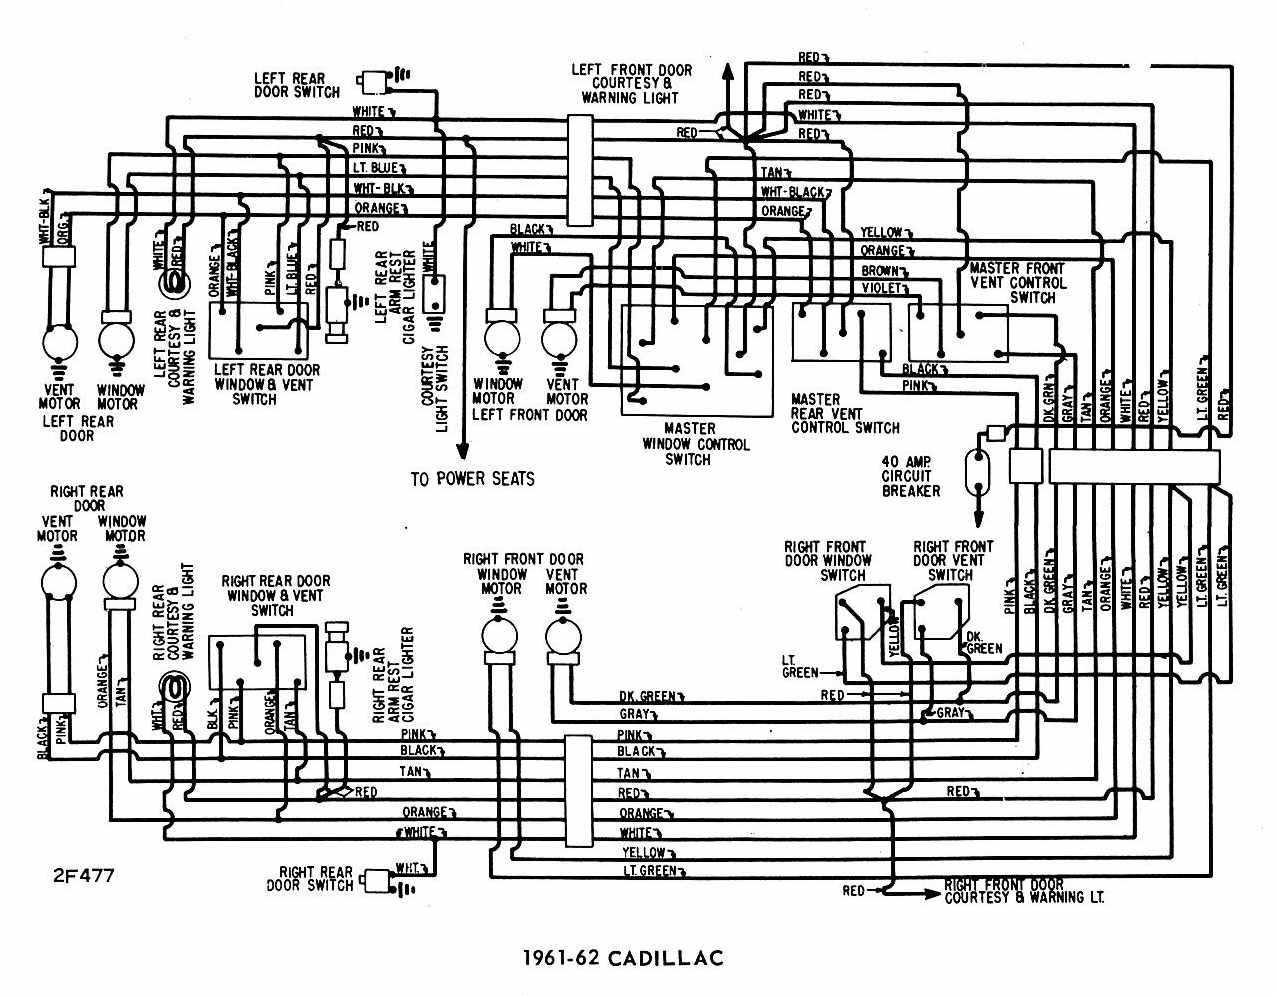 1999 Buick Regal Fuel Pump Relay On 1997 Buick Regal Wiring Diagram